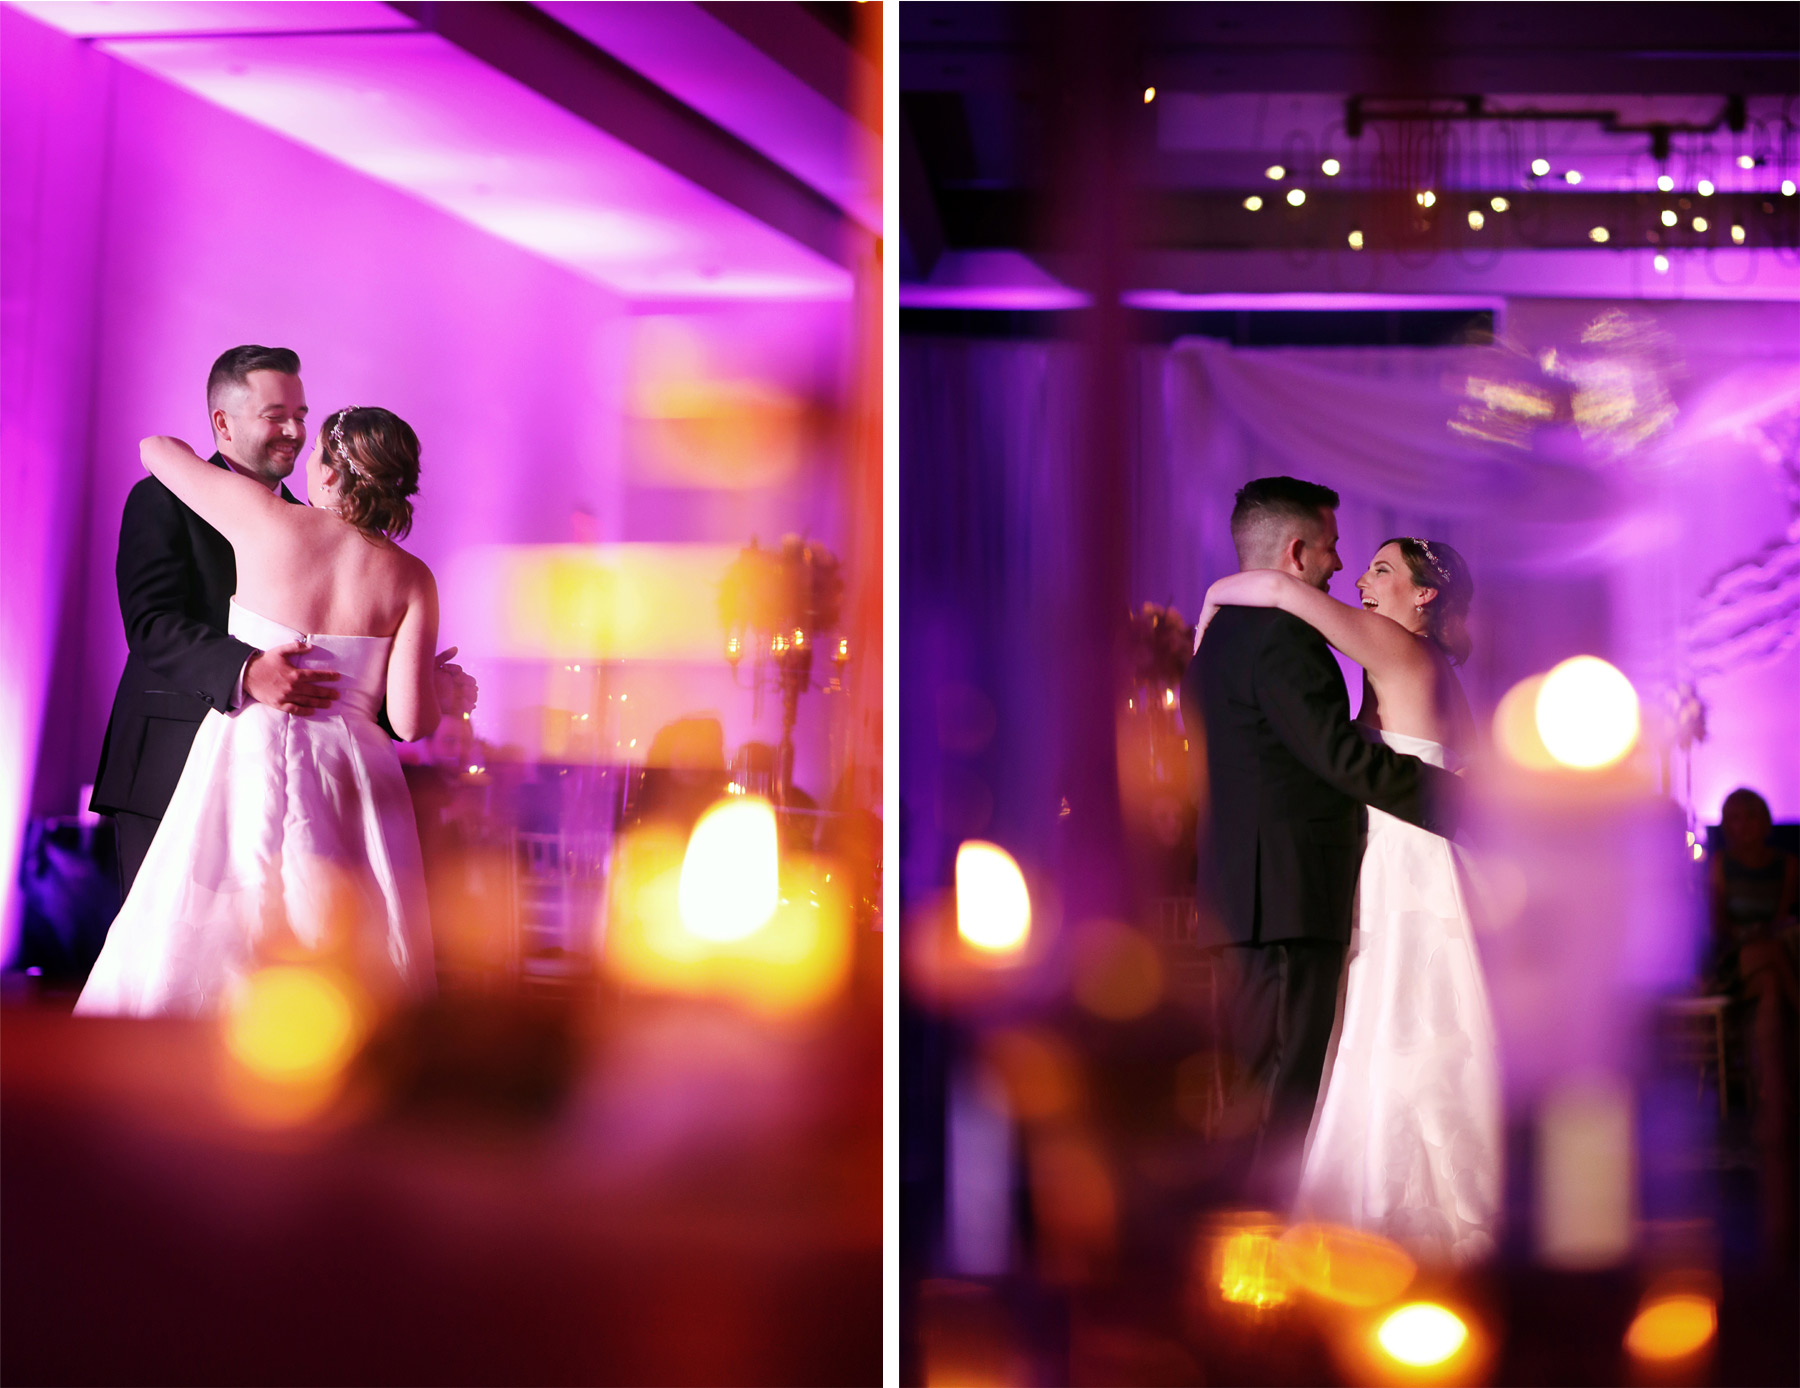 20-Minneapolis-Minnesota-Wedding-Photography-by-Vick-Photography-Loews-Hotel-Reception-Pink-Lighting-First-Dance-Caitlin-and-Alec.jpg